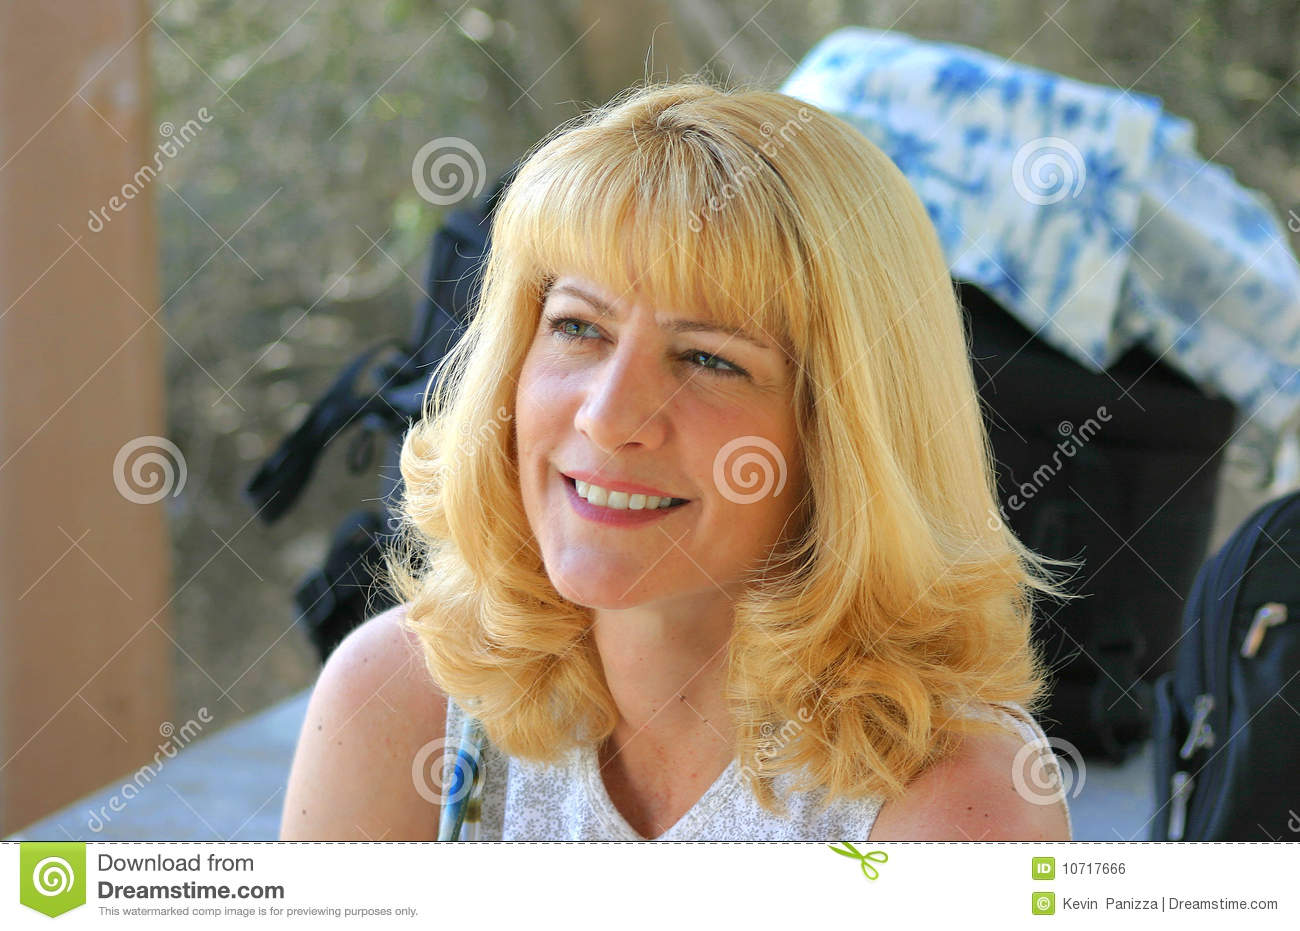 Cute Blonde Mom Looking Up Royalty Free Stock Image   Image  10717666